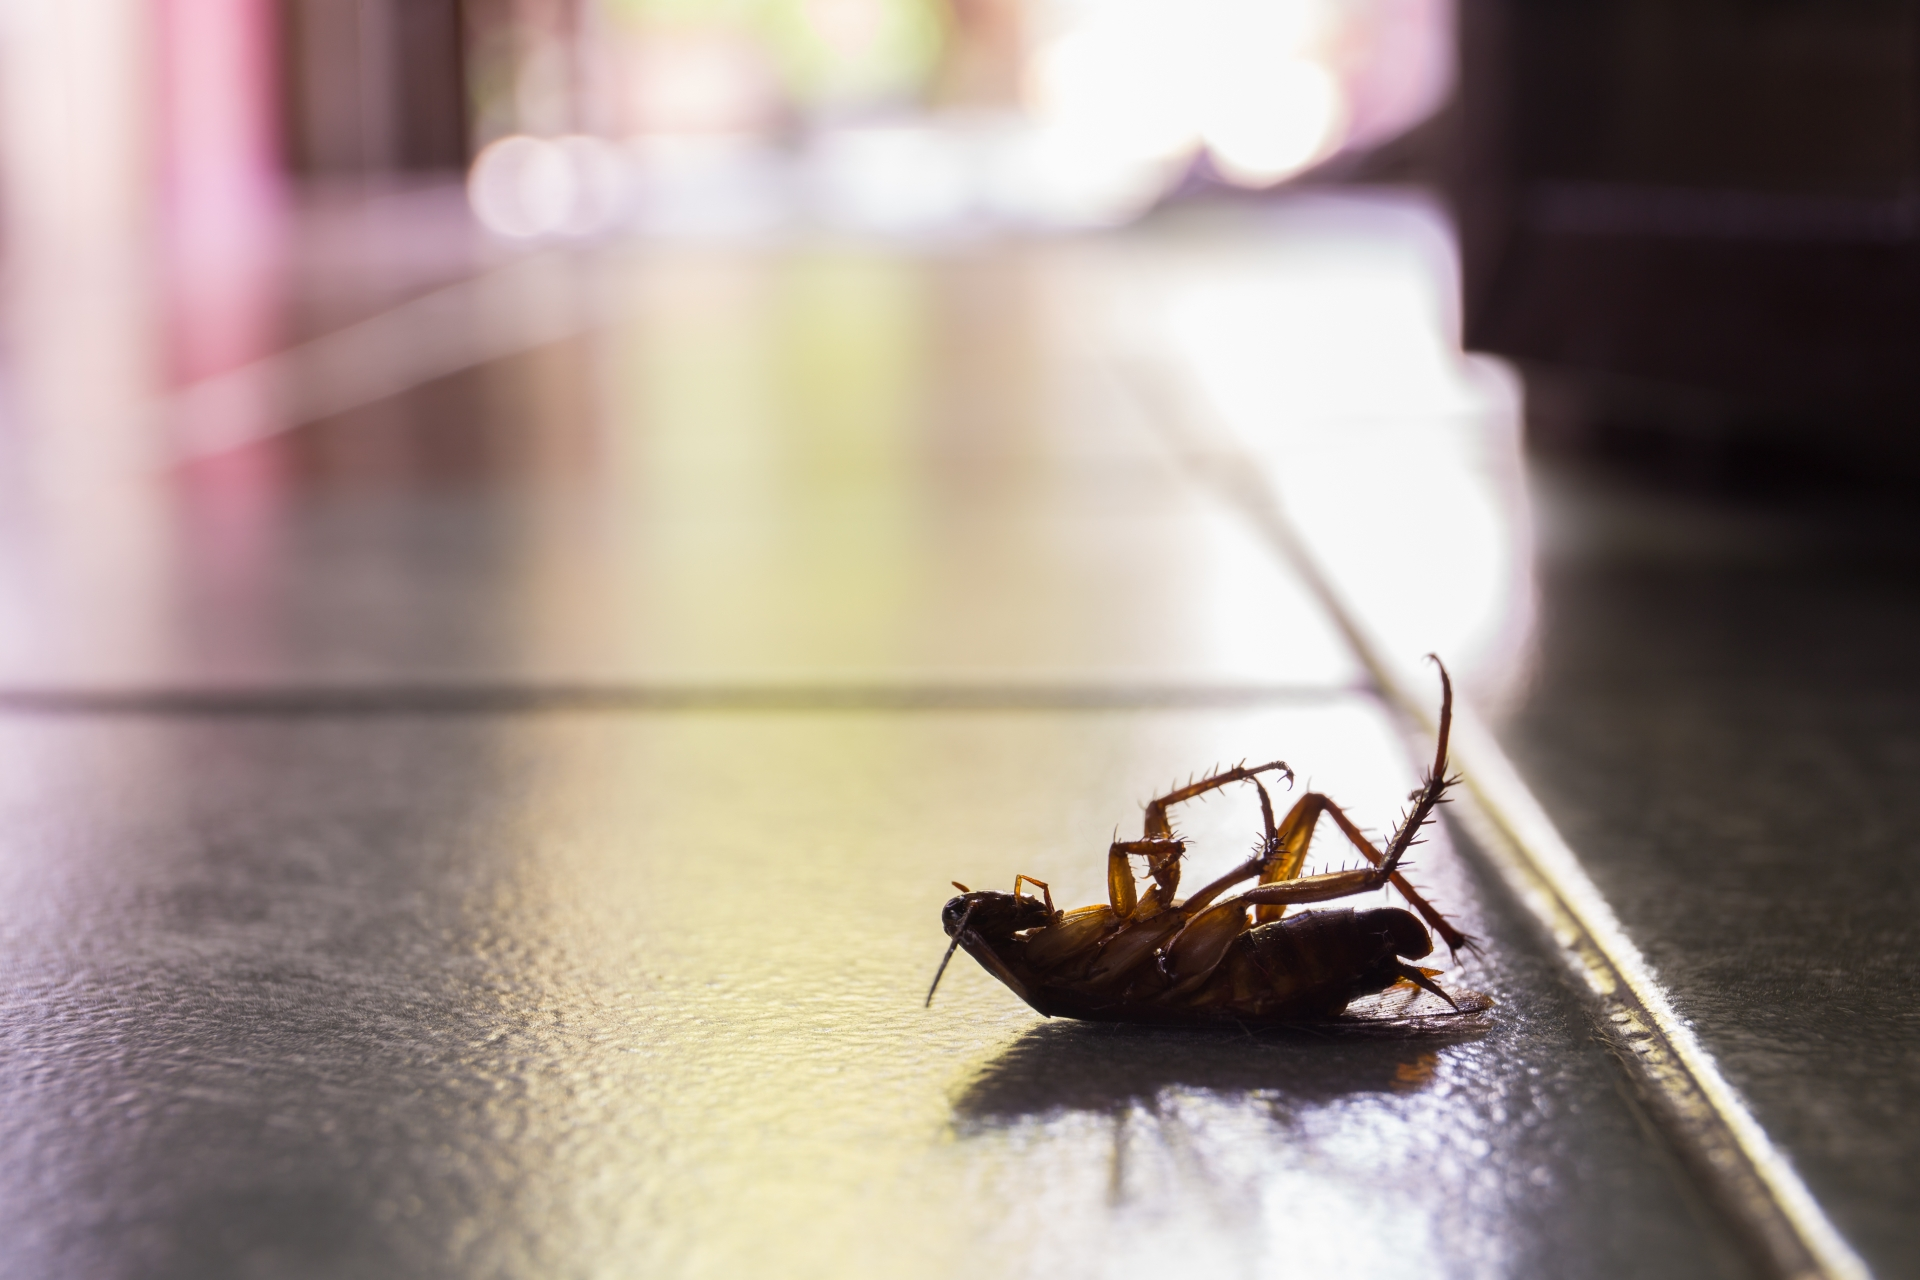 Cockroach Control, Pest Control in Bexley, DA5. Call Now 020 8166 9746